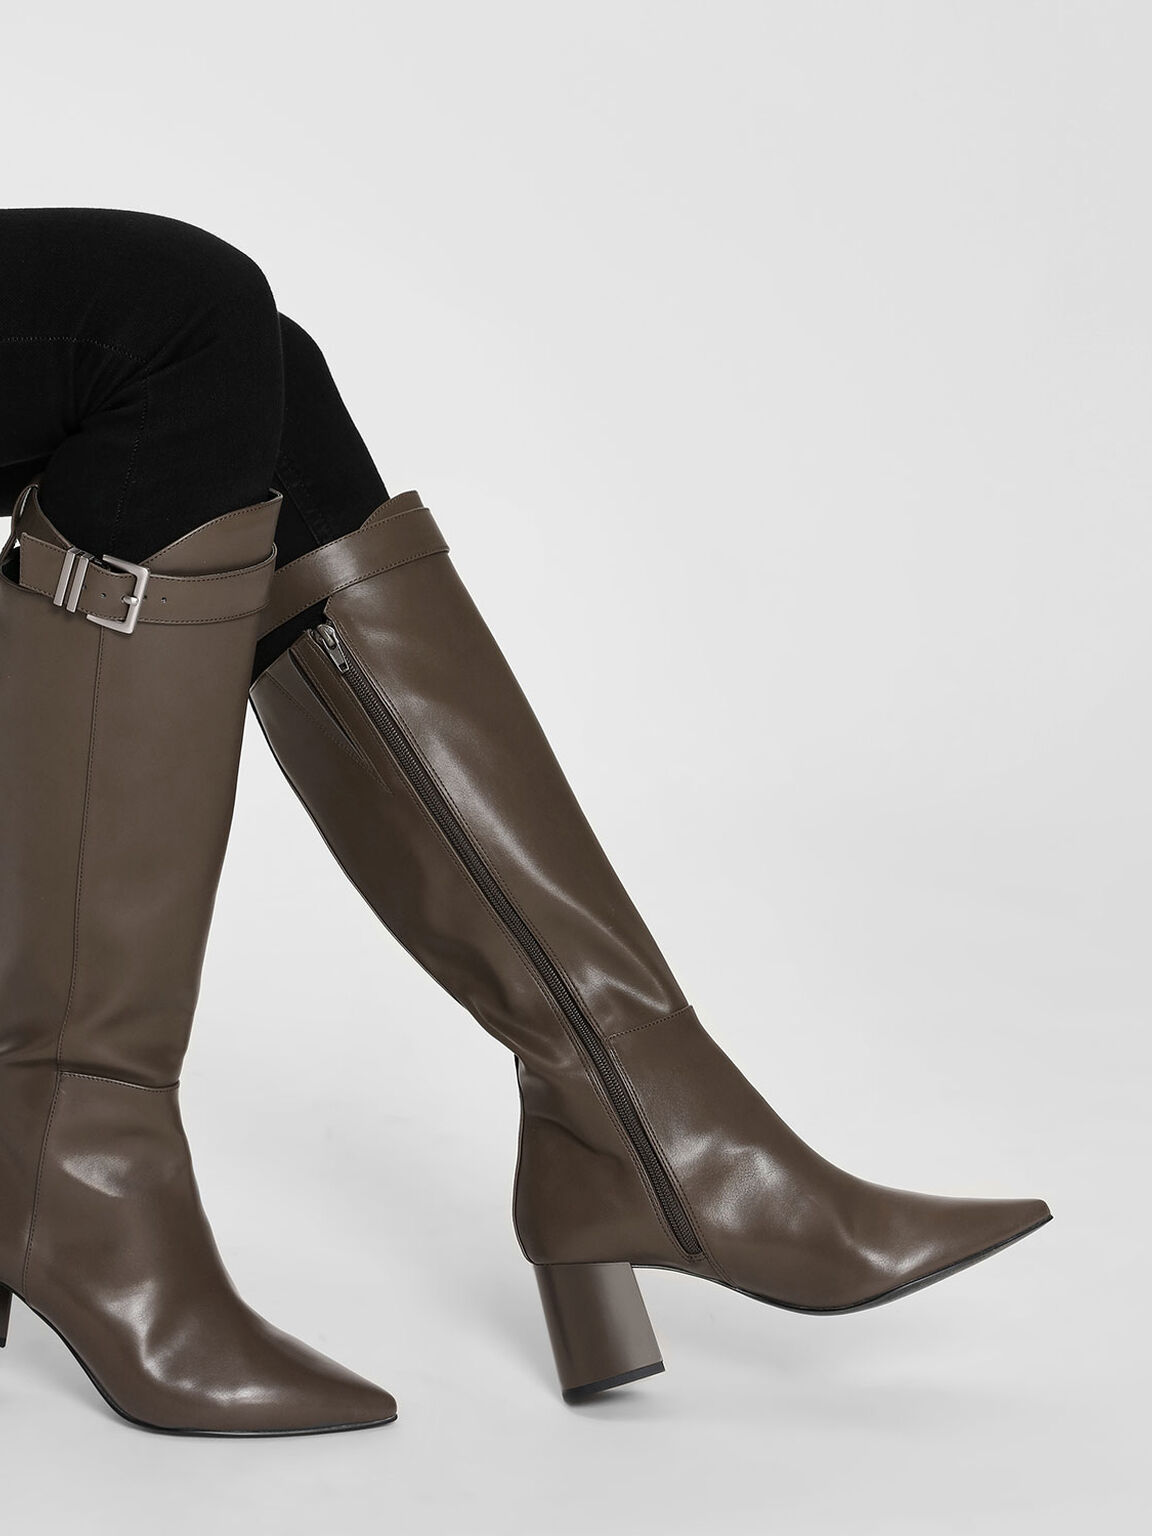 Buckled Strap Detail Knee High Boots, Military Green, hi-res